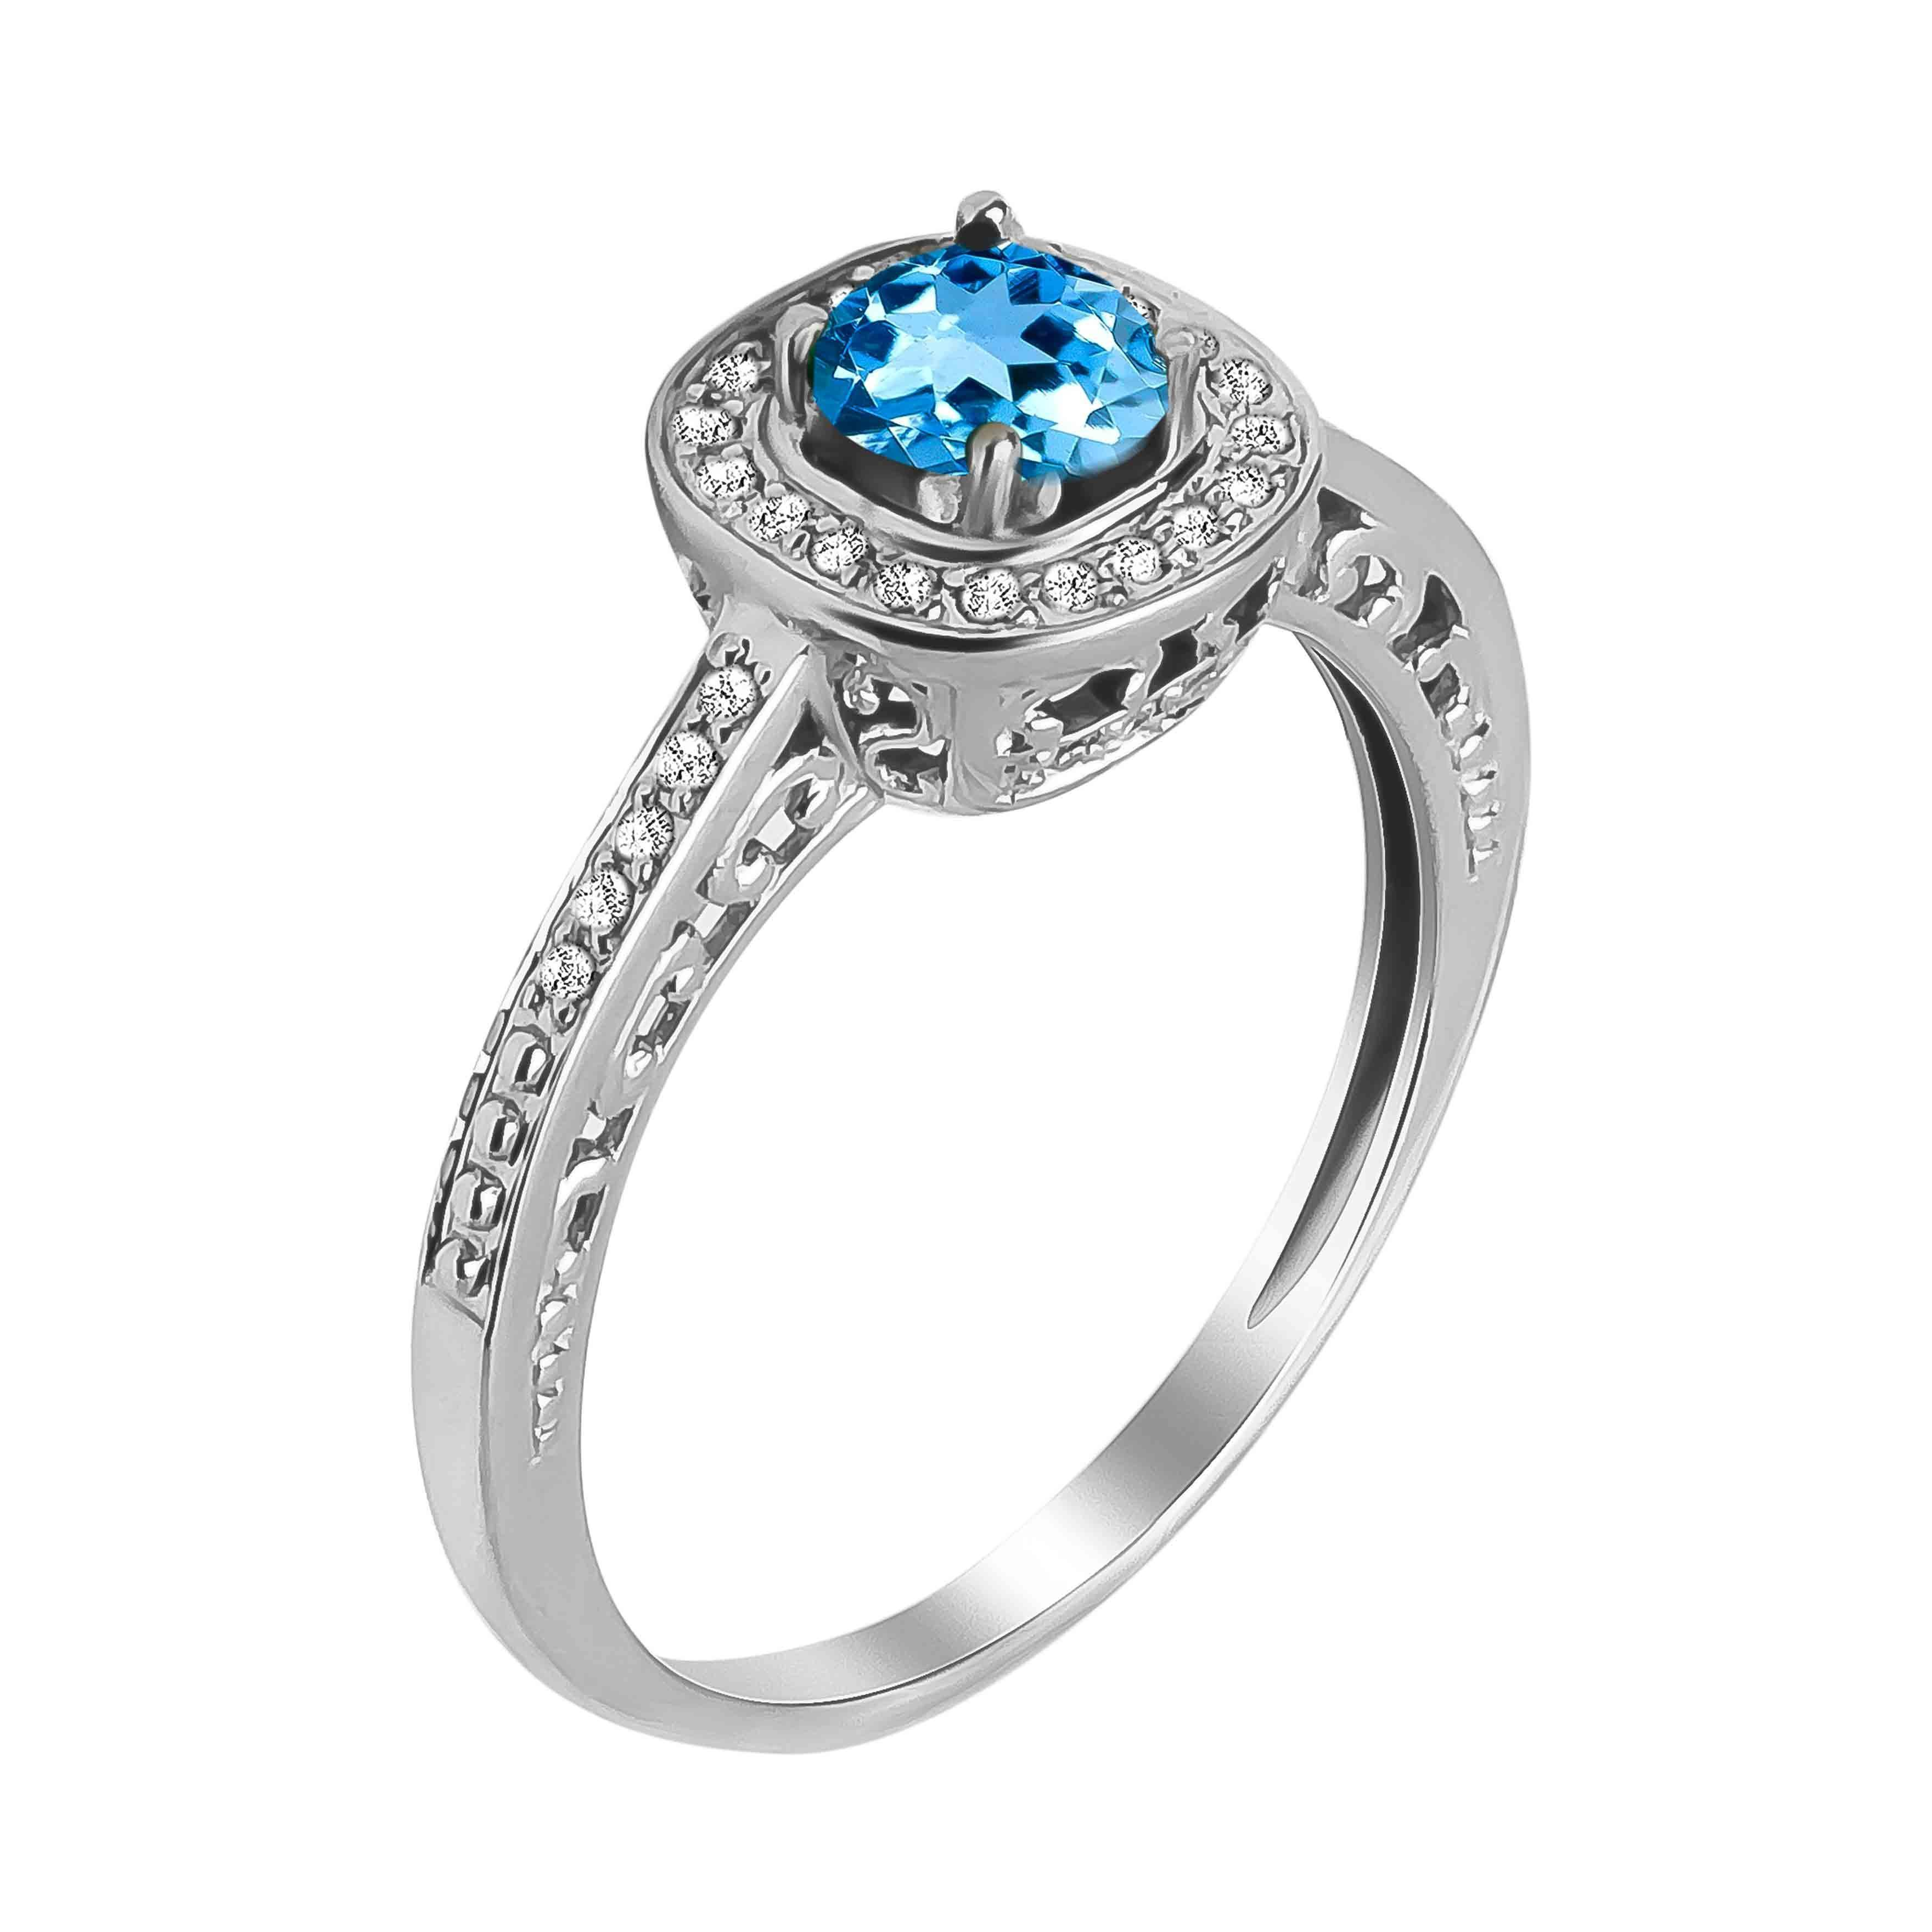 Aquamarine and Diamond Open Gallery Ring